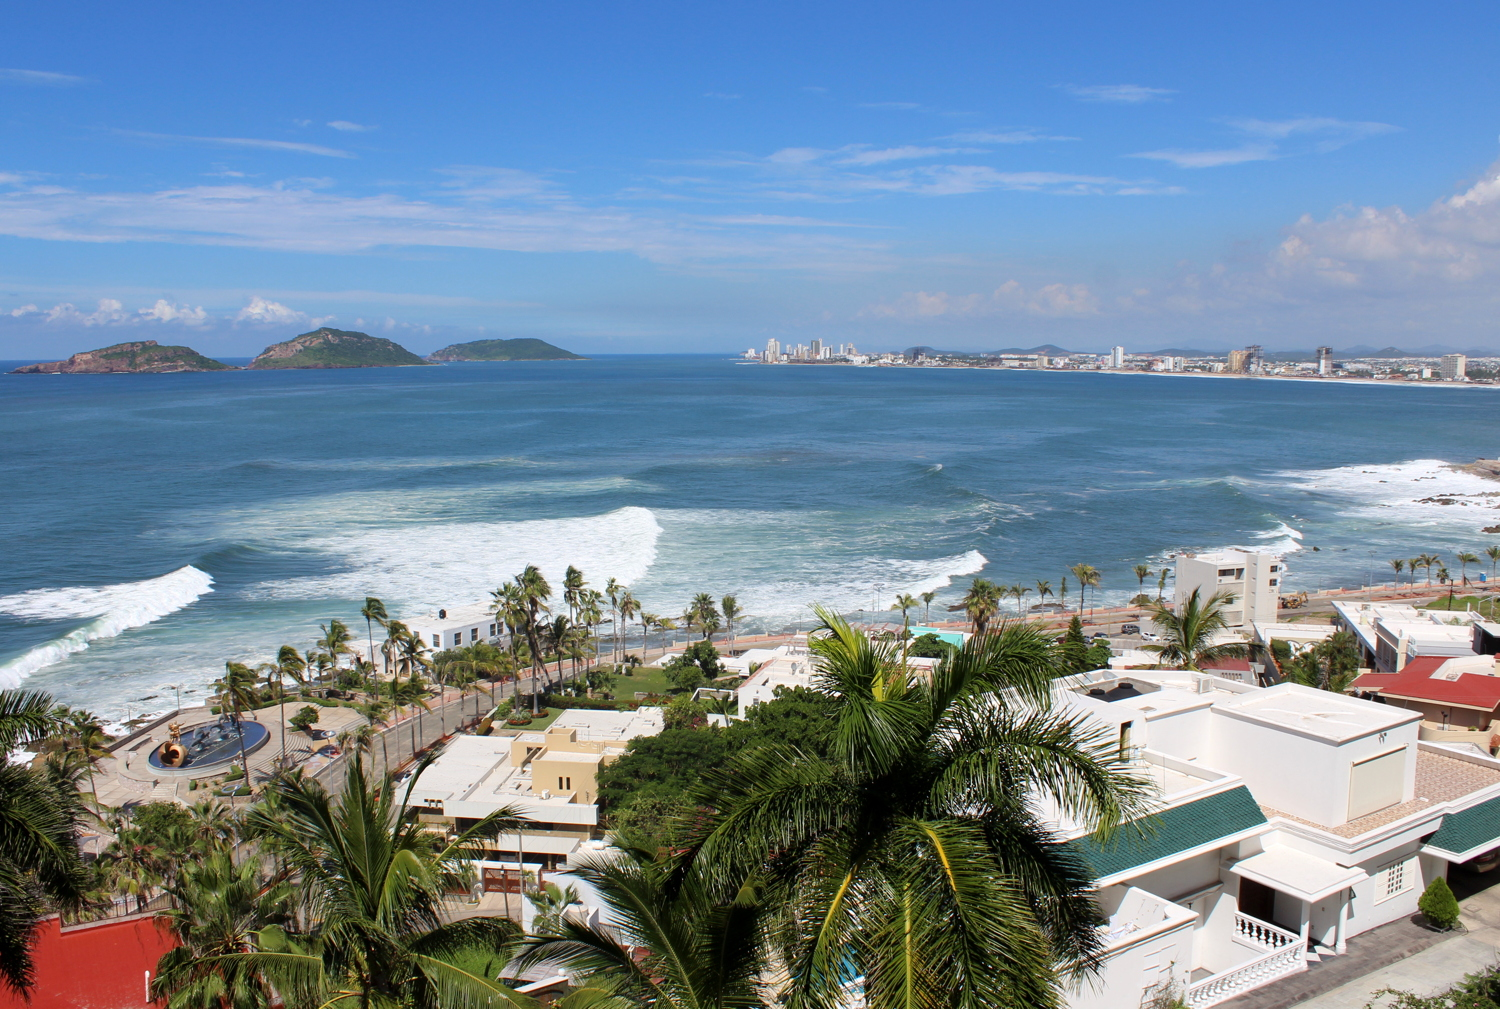 Mazatlán gives tourists a sunny, authentic experience